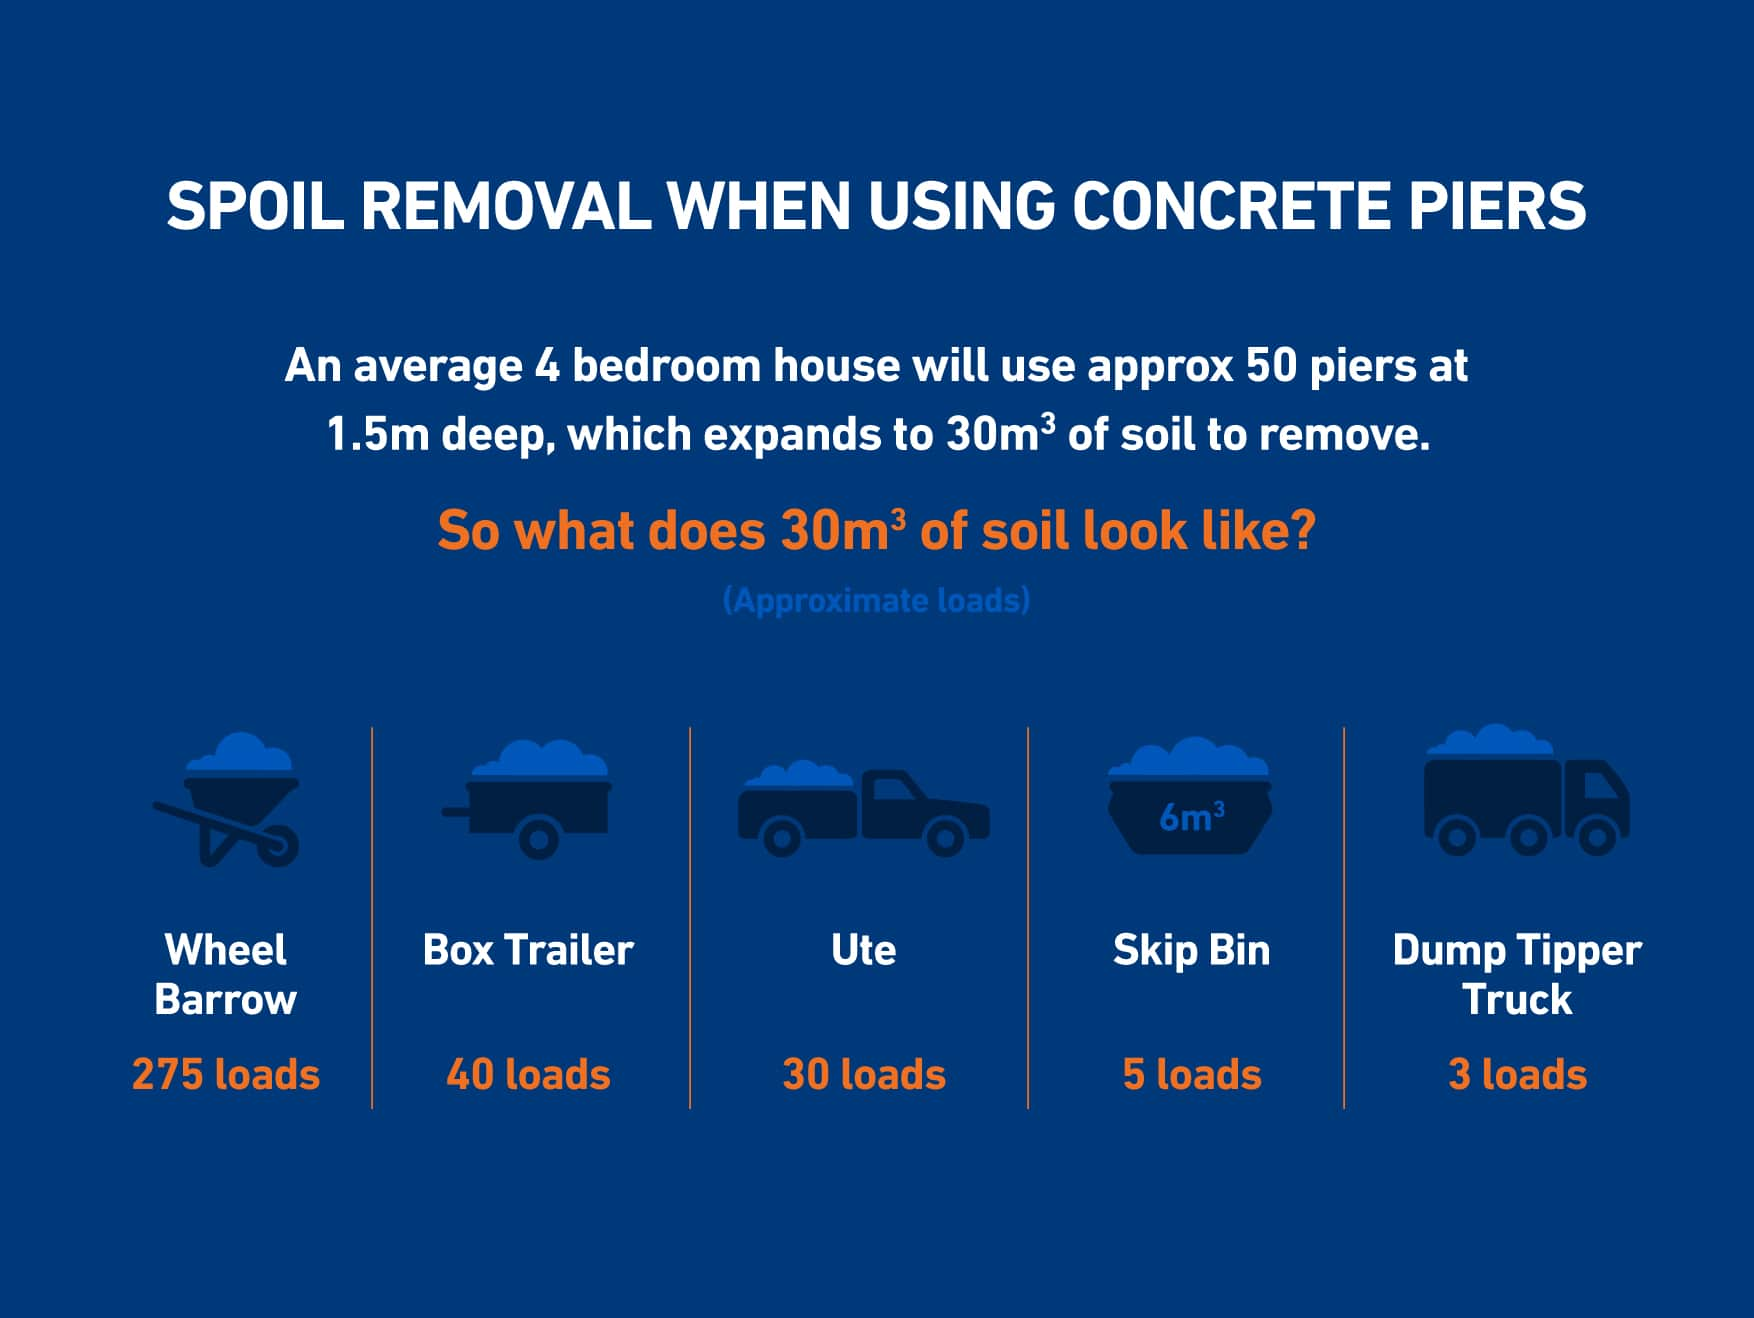 how much spoil removal for bored concrete piers